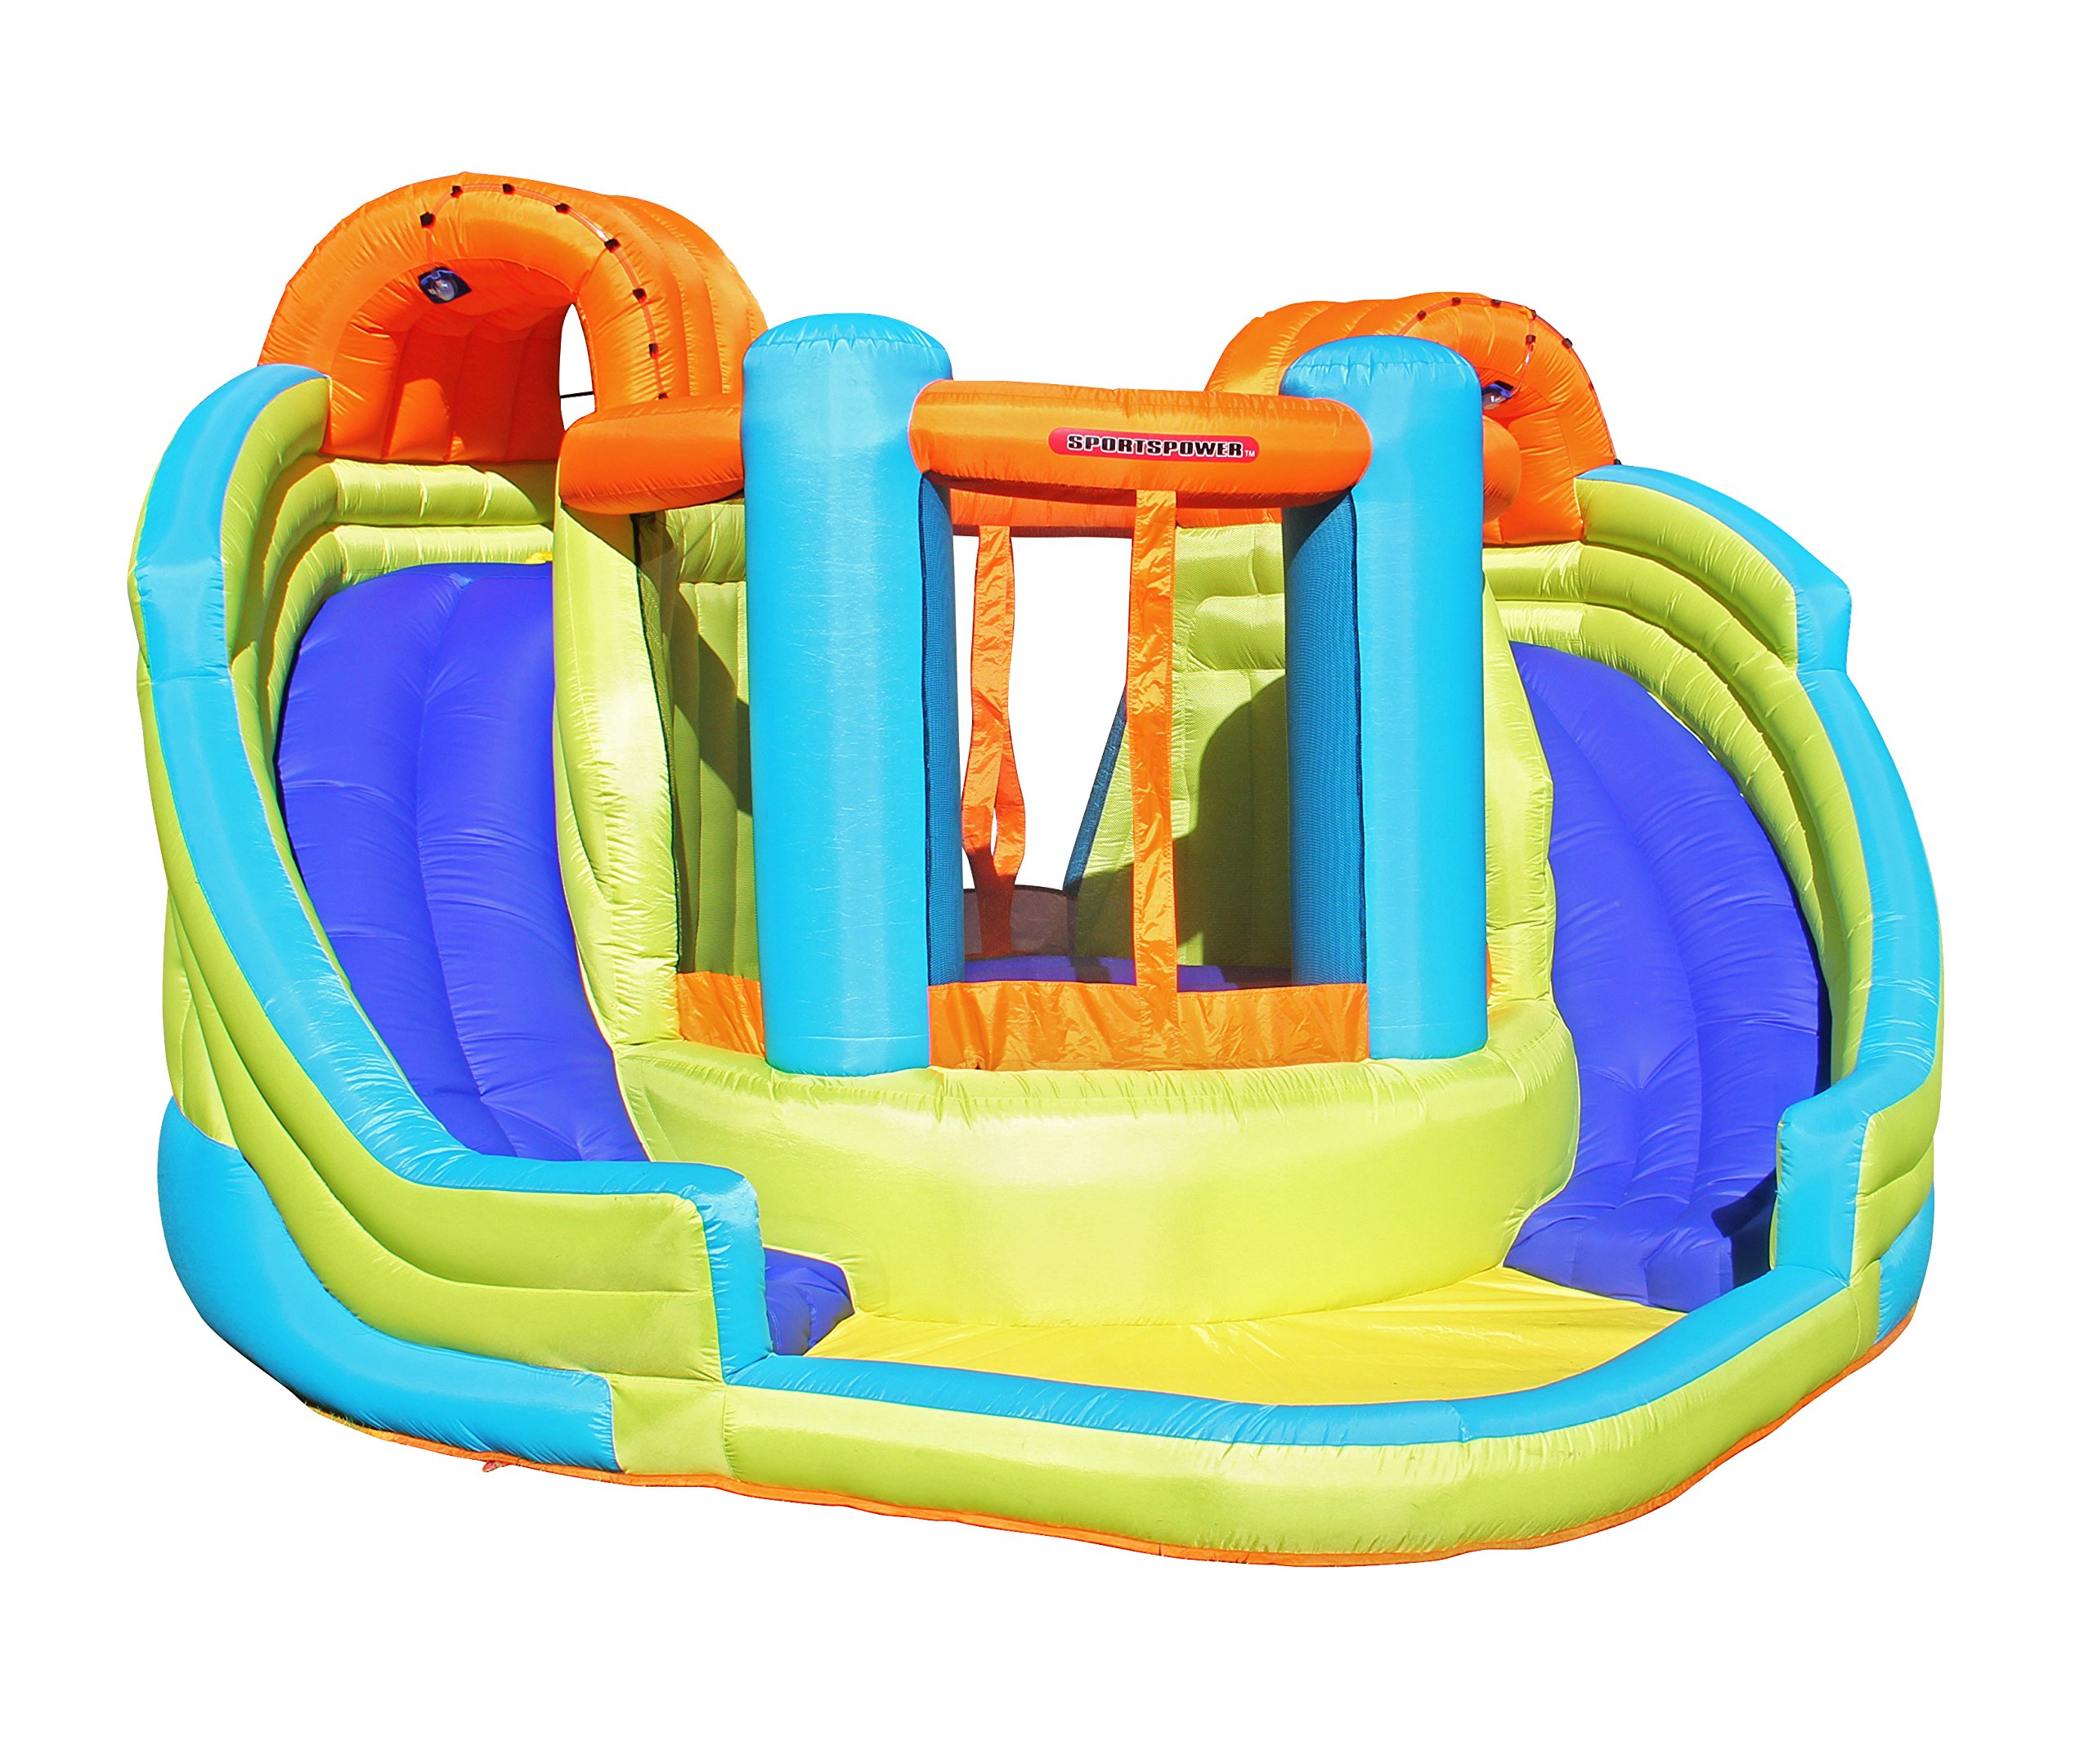 Sportspower Double Slide and Bounce Inflatable Water Slide by Sportspower